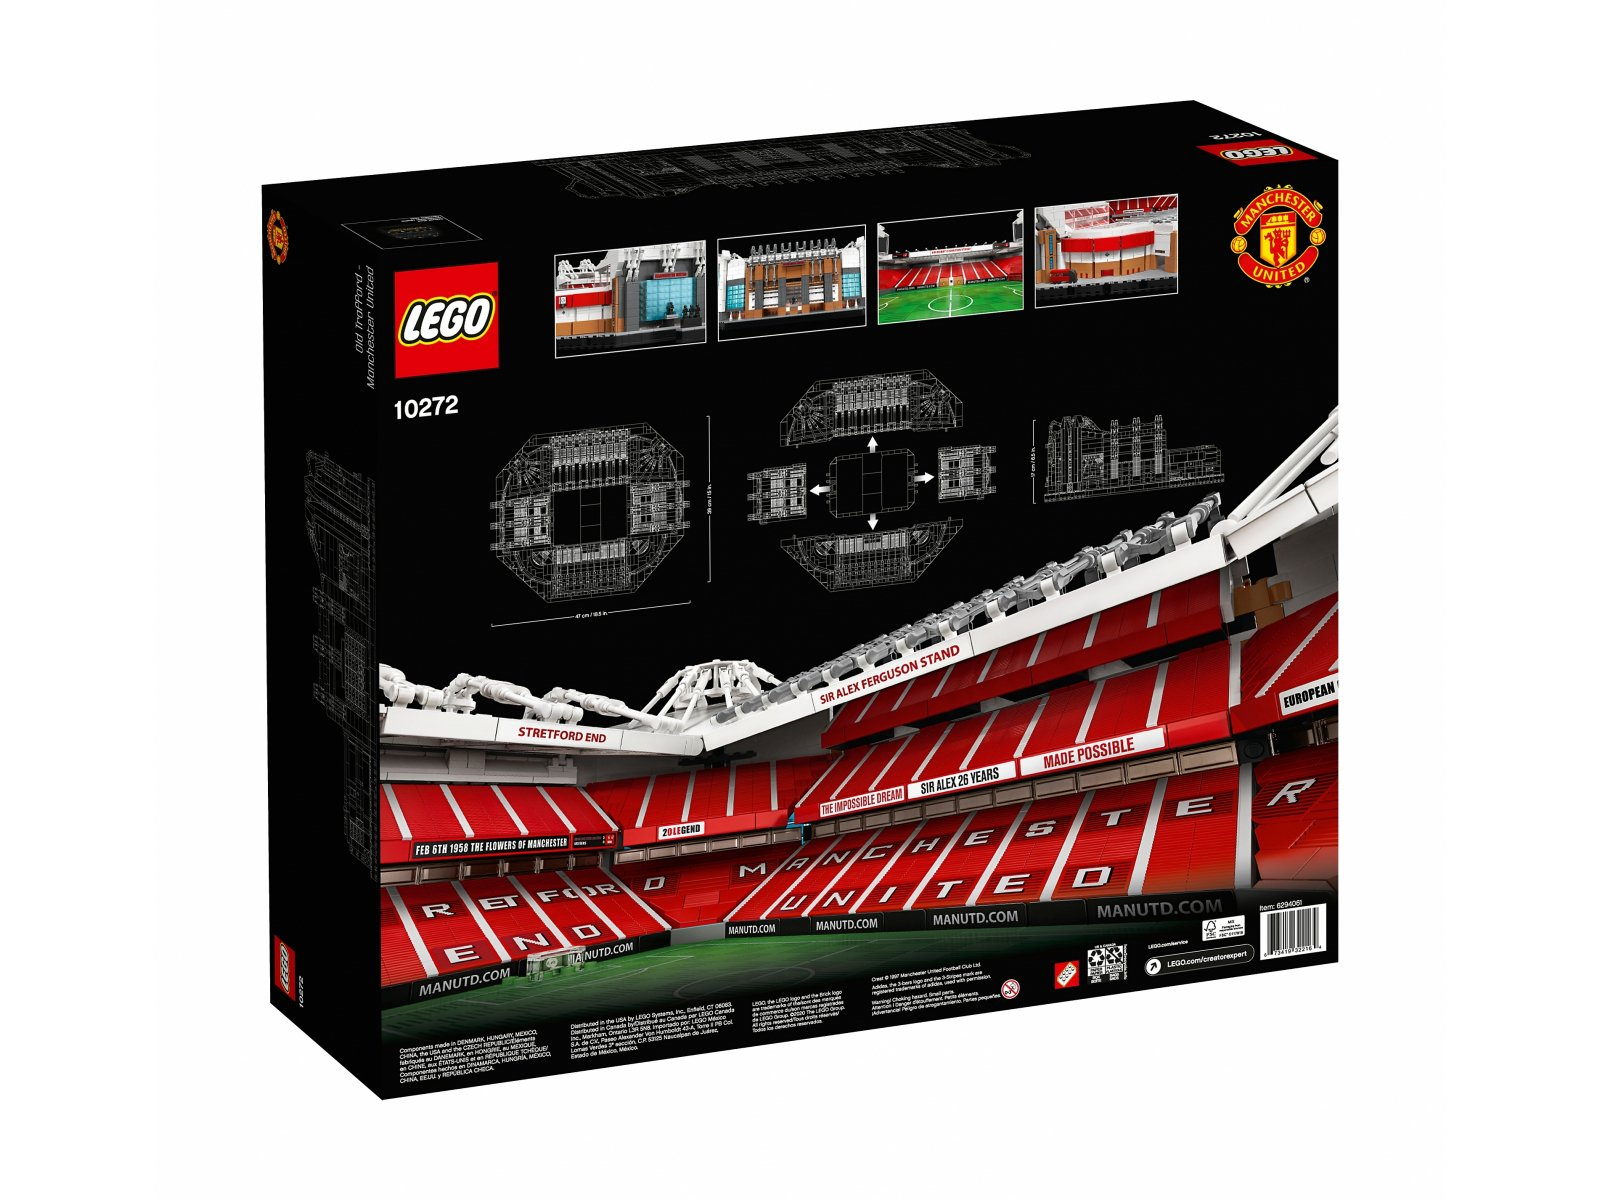 LEGO 10272 Creator Expert Old Trafford - Manchester United